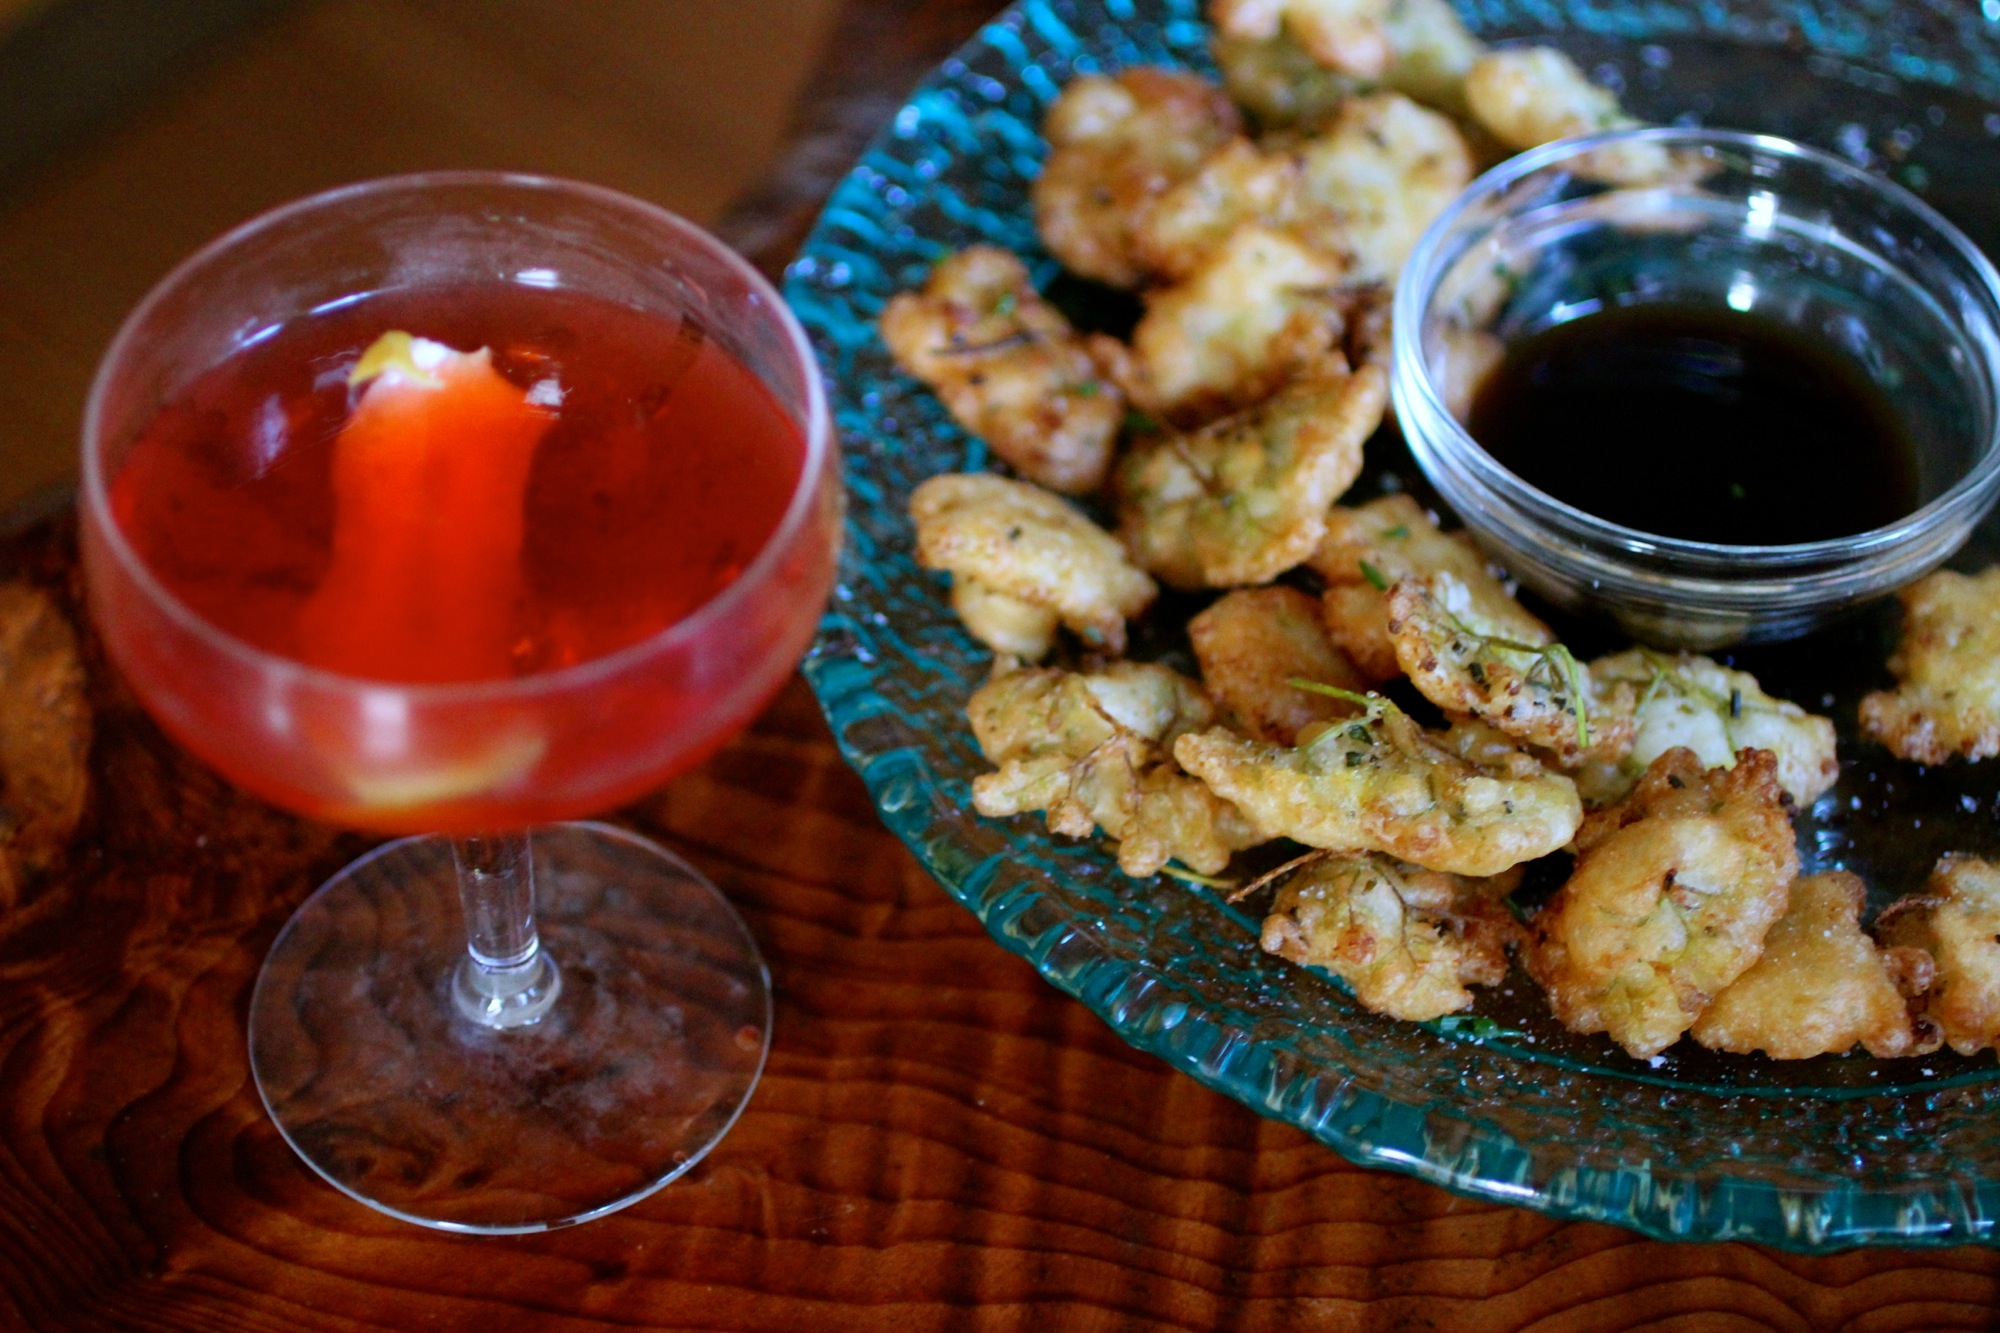 Ponzu not needed, but a cocktail is!